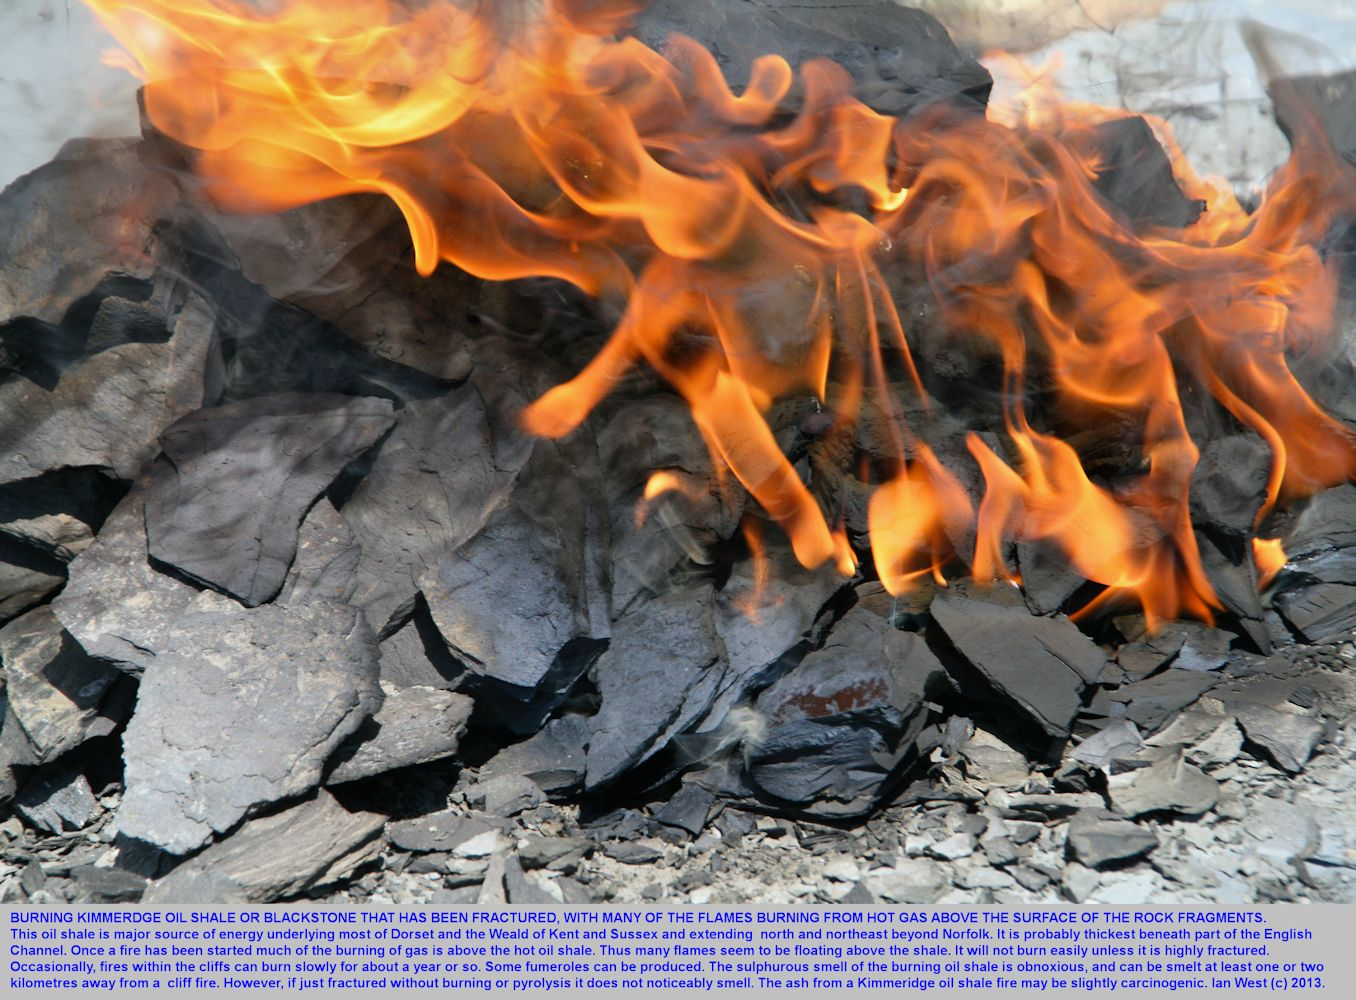 Tongue-like flames above artificially burning Kimmeridge oil shale or Blackstone, east of  Kimmeridge Bay, Dorset, 2013